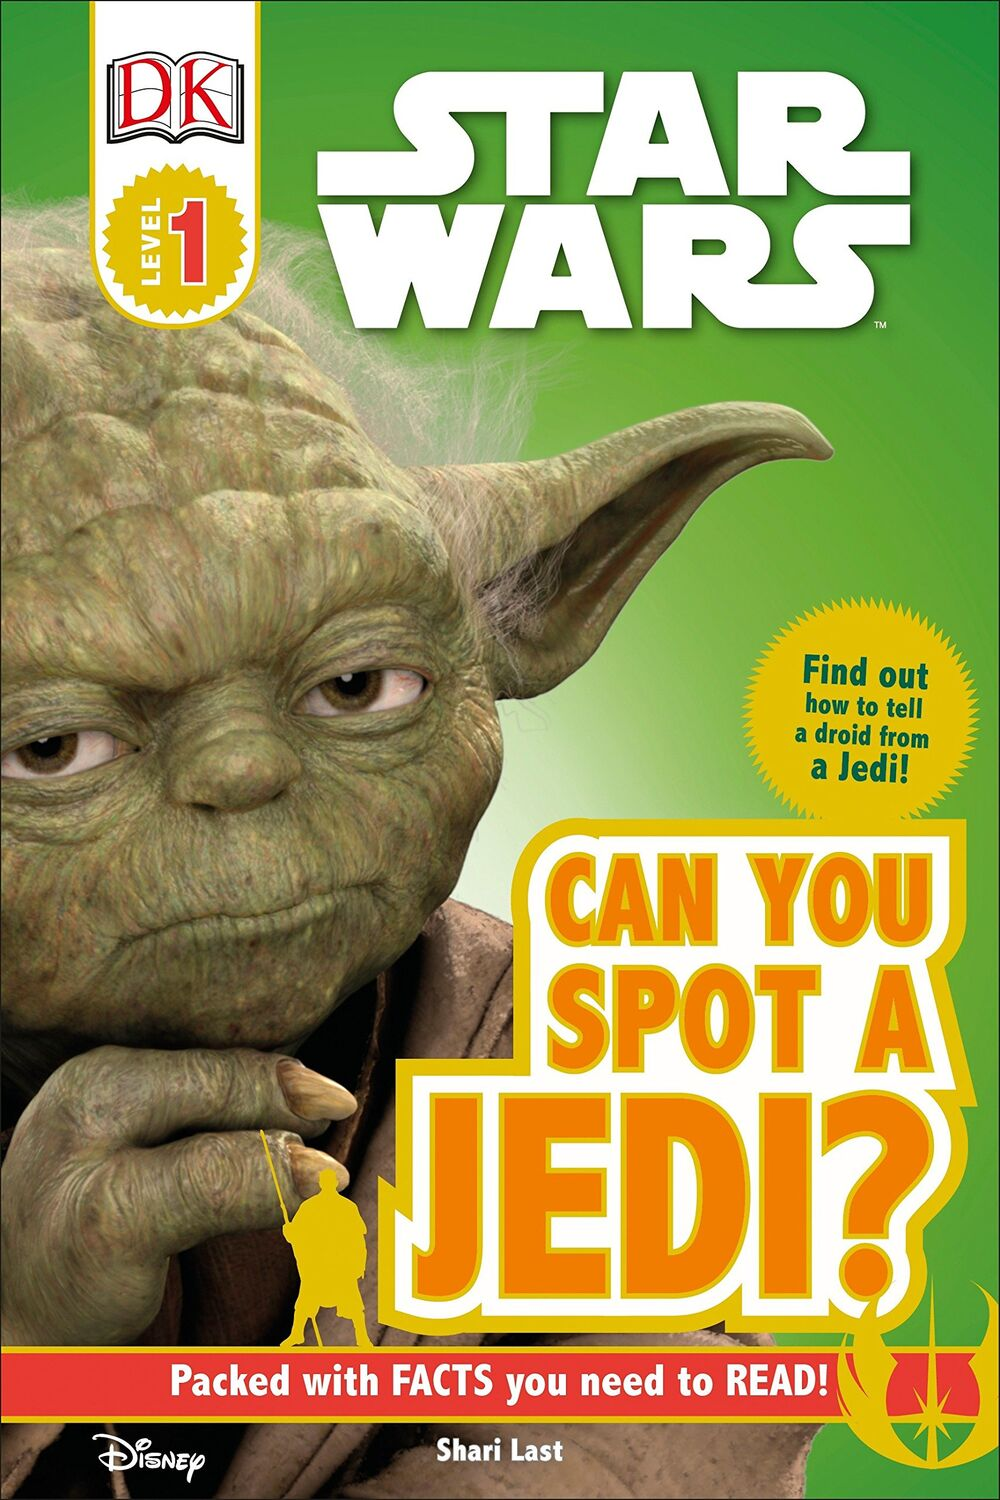 Star Wars: Can You Spot a Jedi?